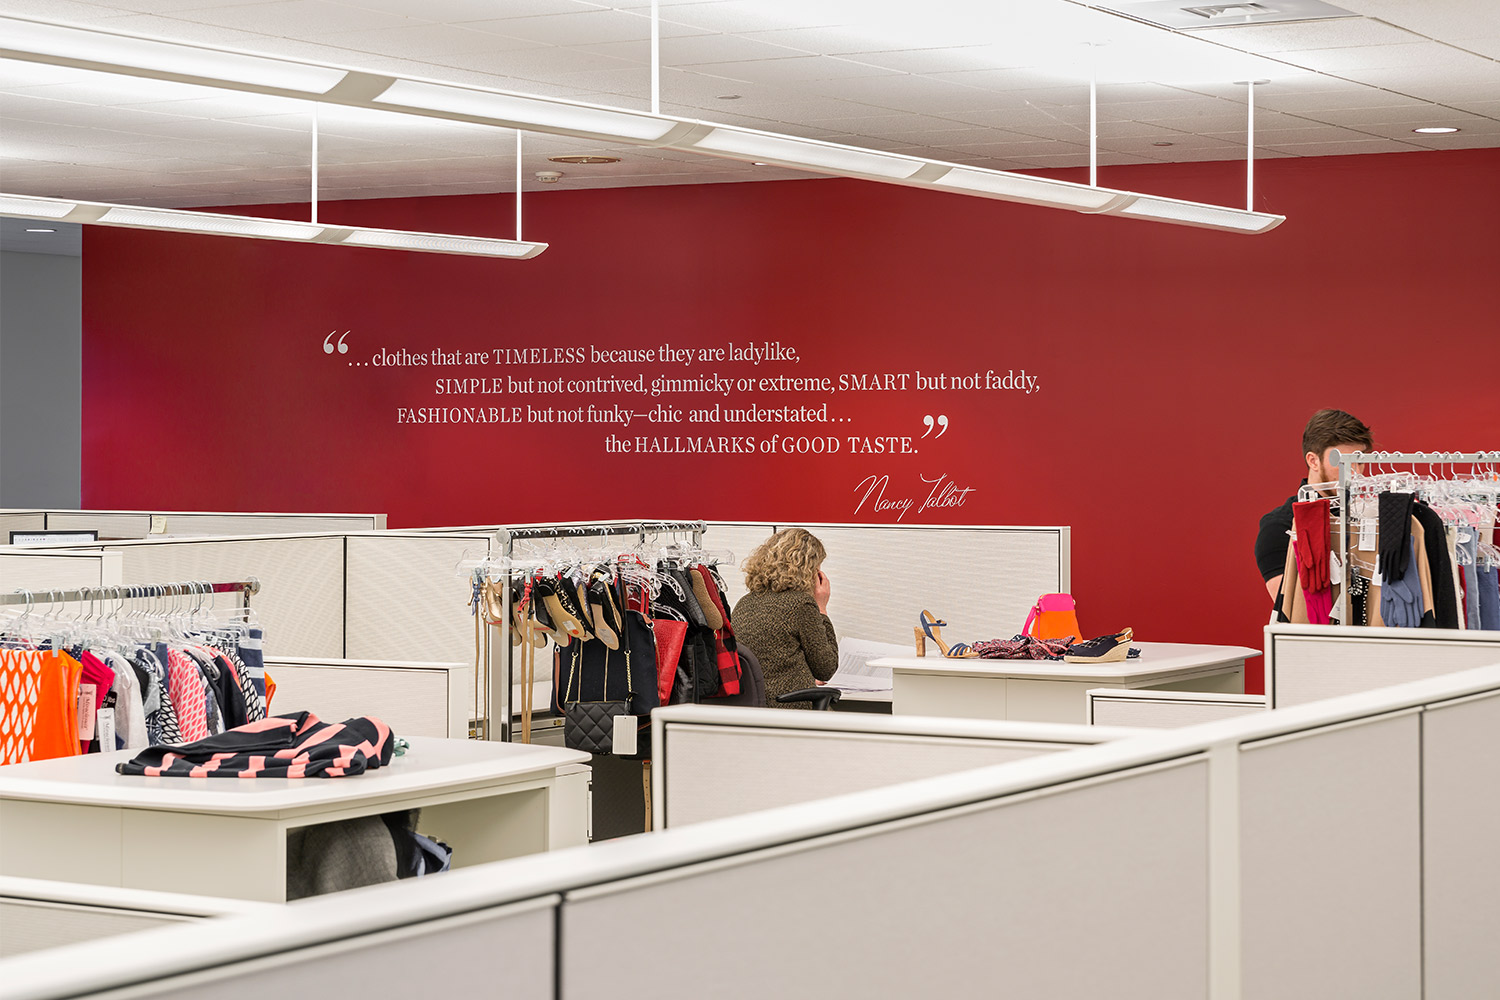 Corporate branding design at Talbots